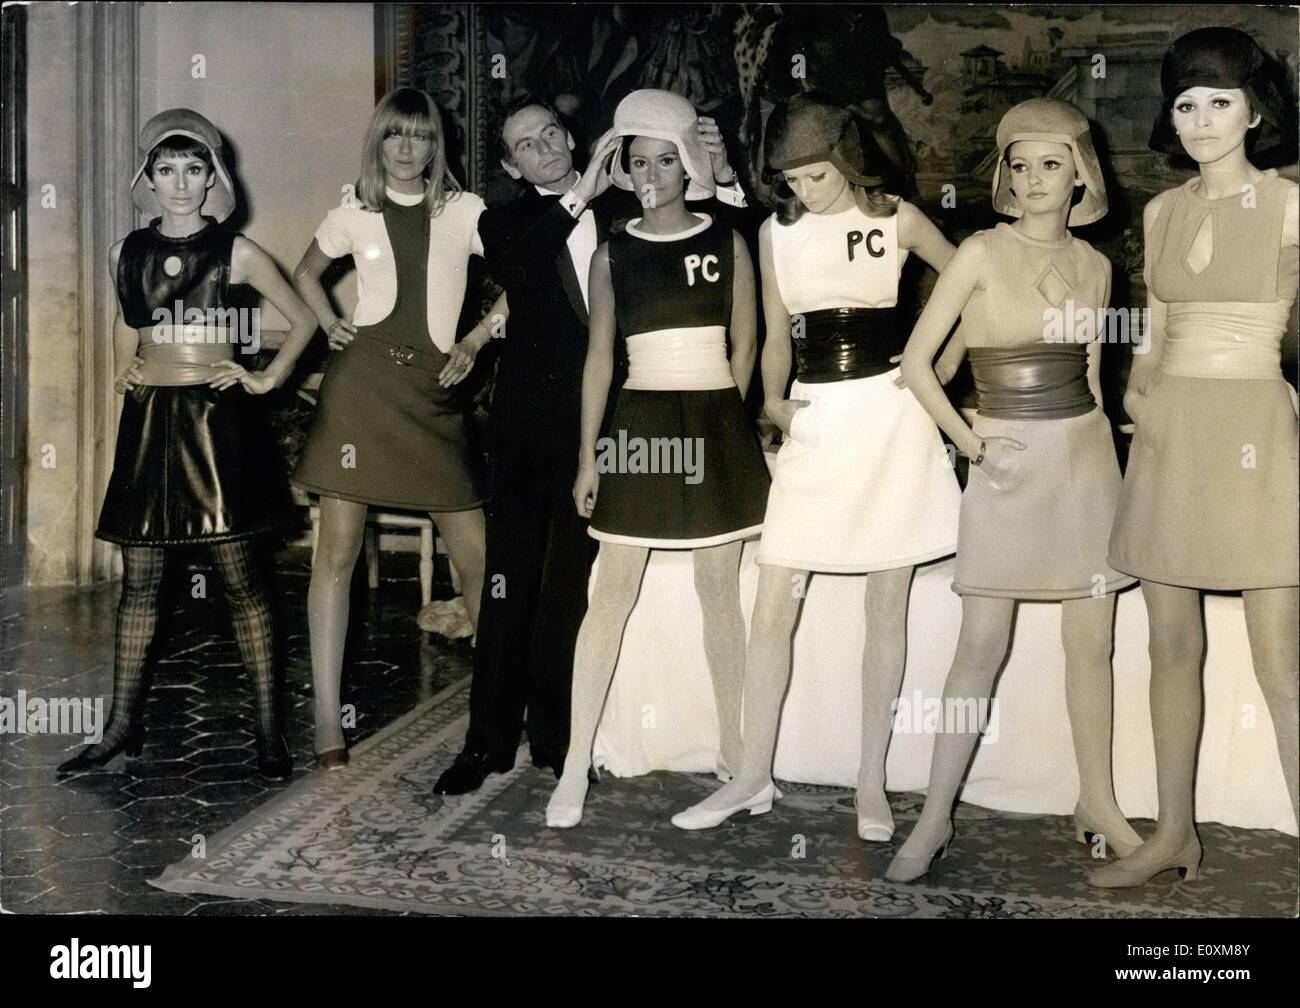 Apr. 04, 1967 - Pierre Cardin in Rome: Fashion show at French Embassy. Pierre Cardin the famous French couturier presented his collection ''Spring 67'' at Palazzo Farnese, seat of the French embassy in Rome. Photo shows Pierre Cardin pictured with his models. - Stock Image